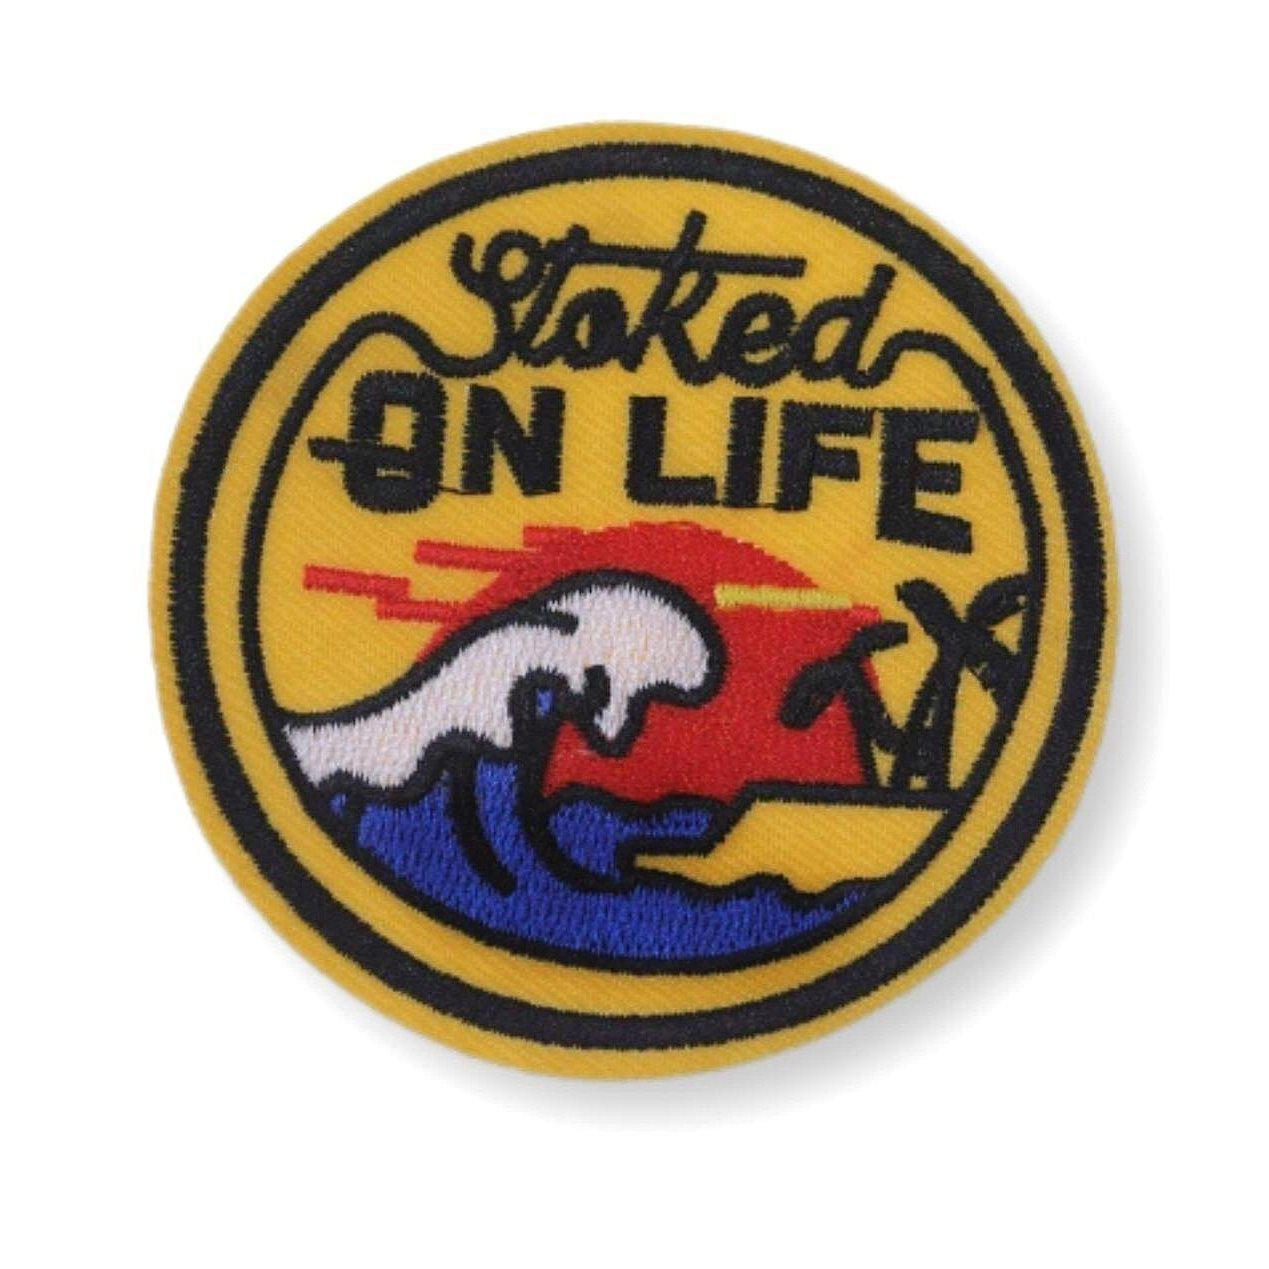 Stoked On Life Embroidered Patch